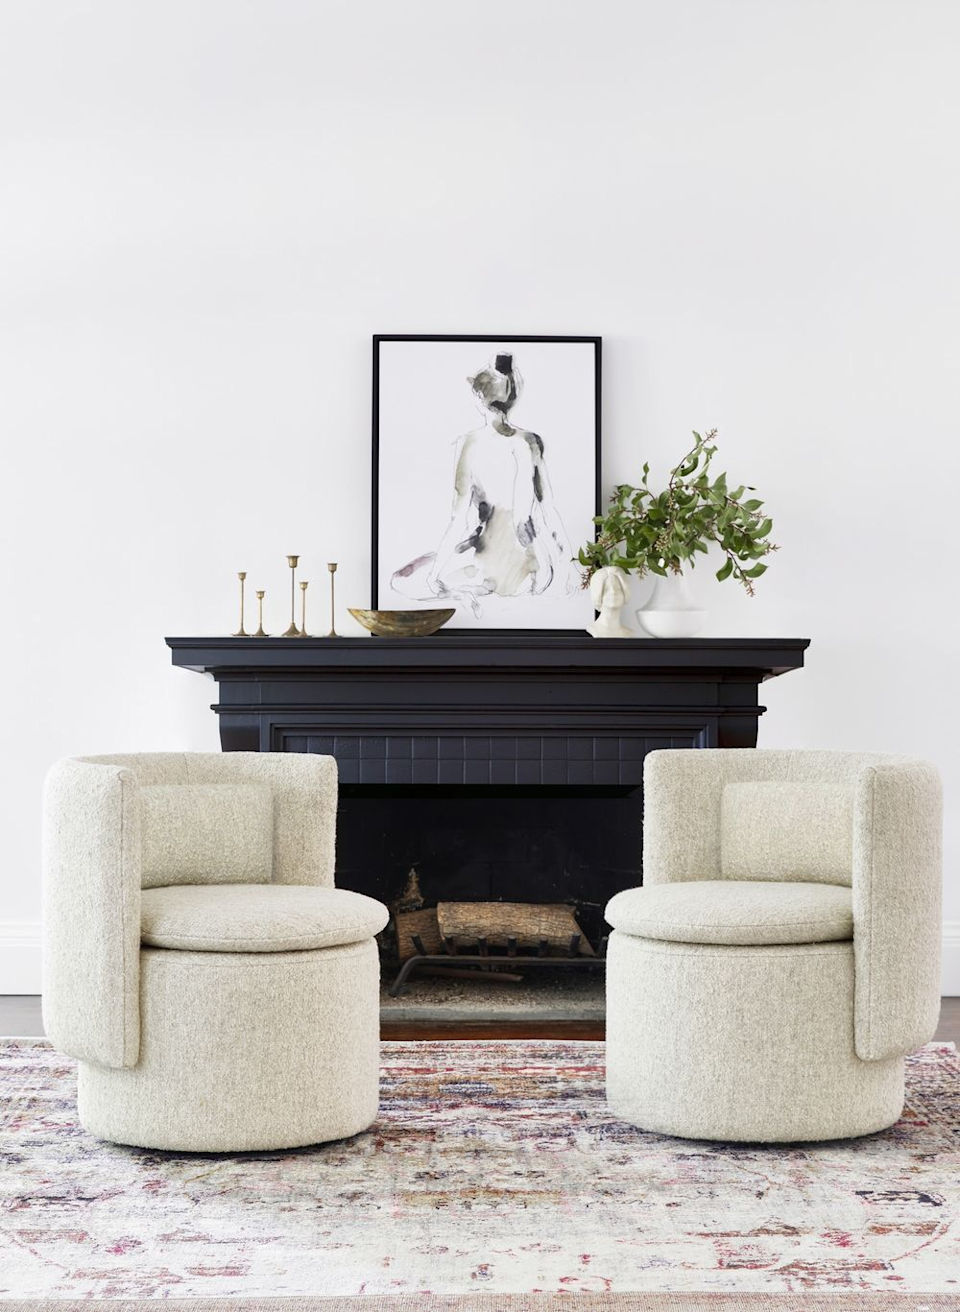 "<br><br><strong>Lulu & Georgia</strong> Hazel Swivel Chair in Natural Boucle, $, available at <a href=""https://go.skimresources.com/?id=30283X879131&url=https%3A%2F%2Fwww.luluandgeorgia.com%2Fhazel-swivel-chair-natural-boucle"" rel=""nofollow noopener"" target=""_blank"" data-ylk=""slk:Lulu & Georgia"" class=""link rapid-noclick-resp"">Lulu & Georgia</a>"